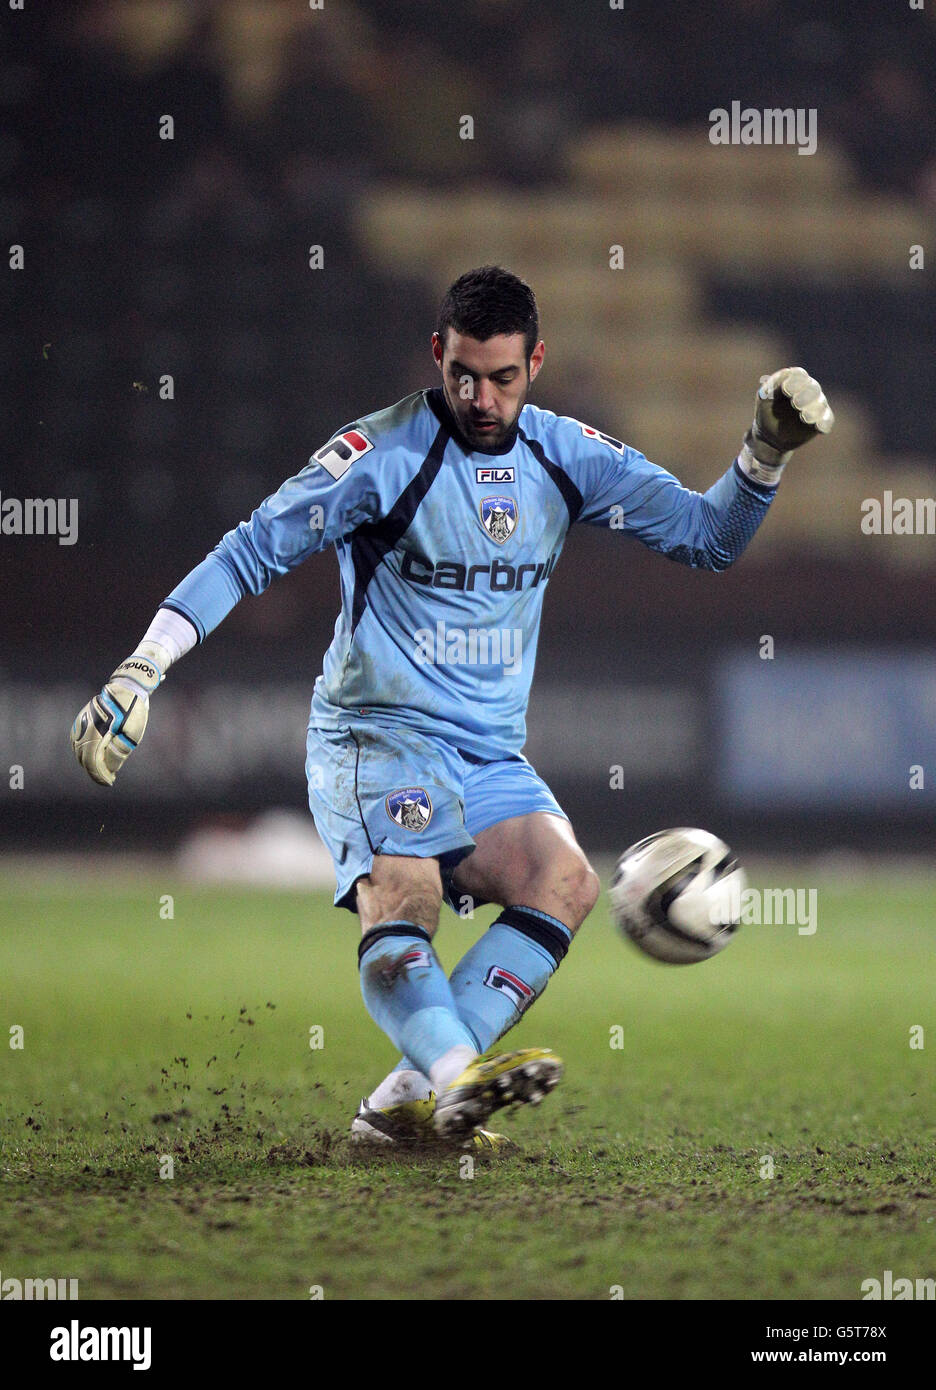 Soccer - npower Football League One - Notts County v Oldham Athletic - Meadow Lane - Stock Image